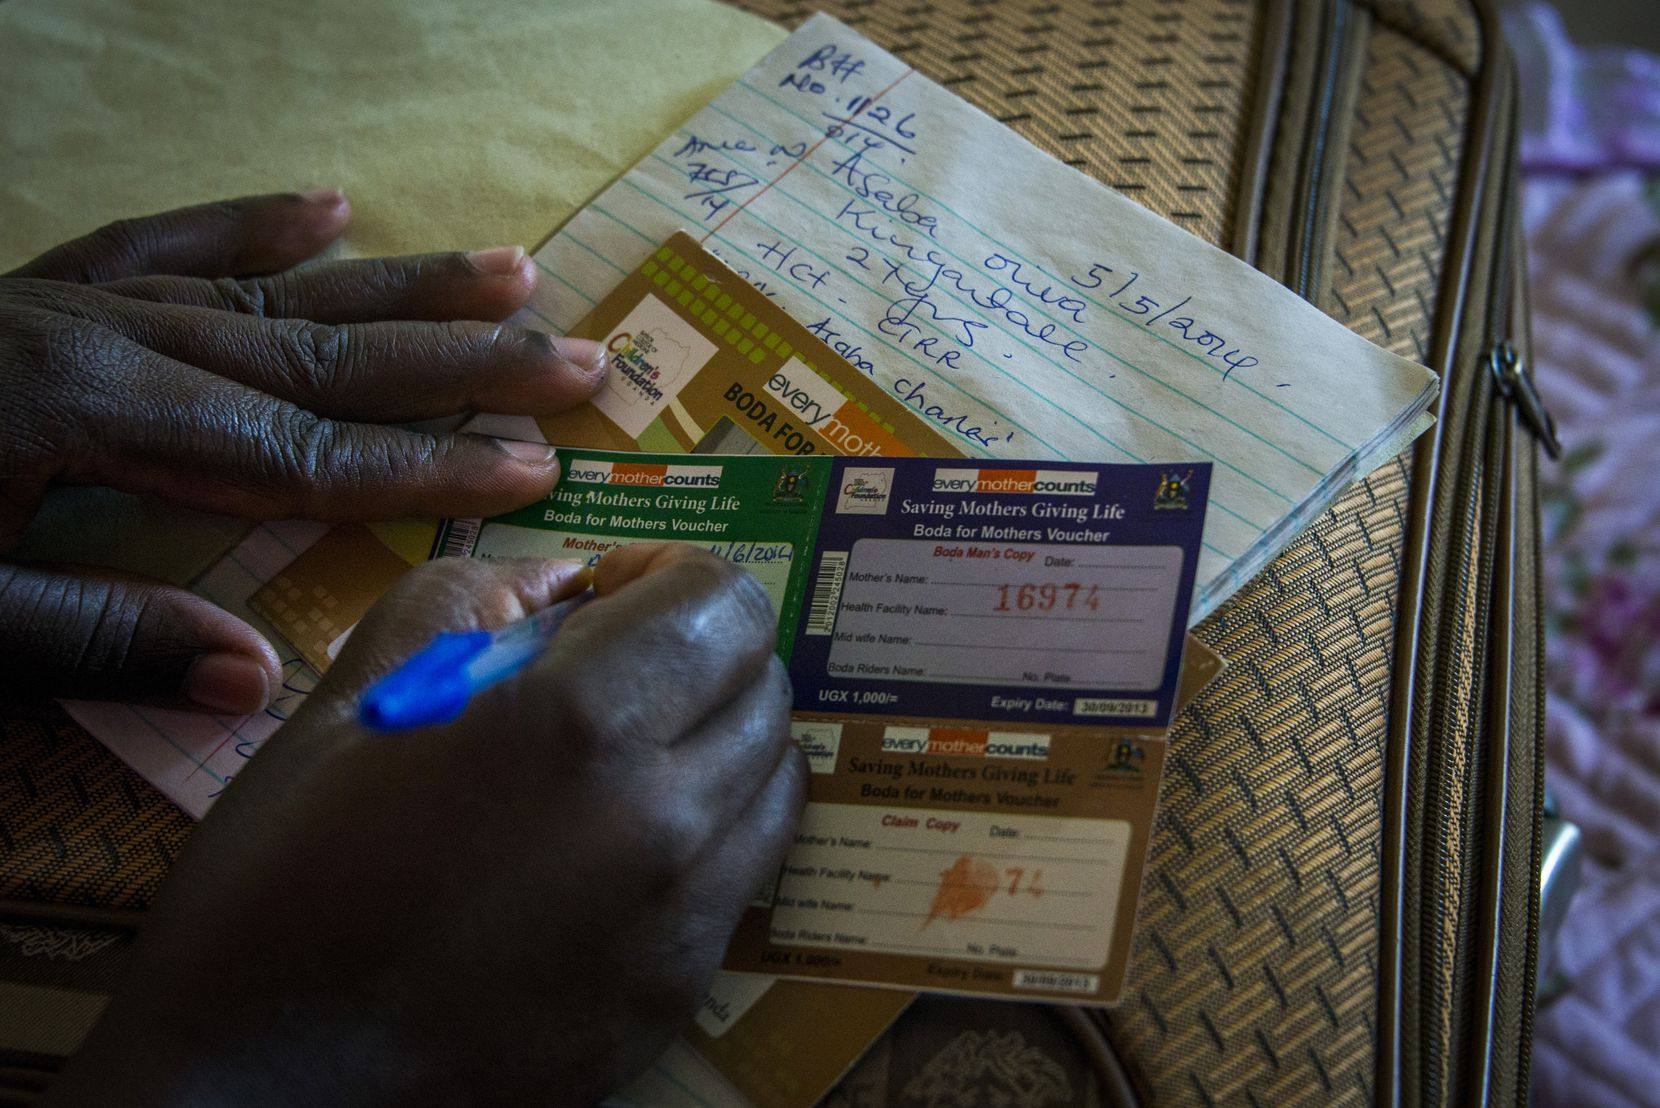 Boda boda drivers are paid with a voucher after delivering a mother to the nearest health facility. (Smiley N. Pool © 2014)